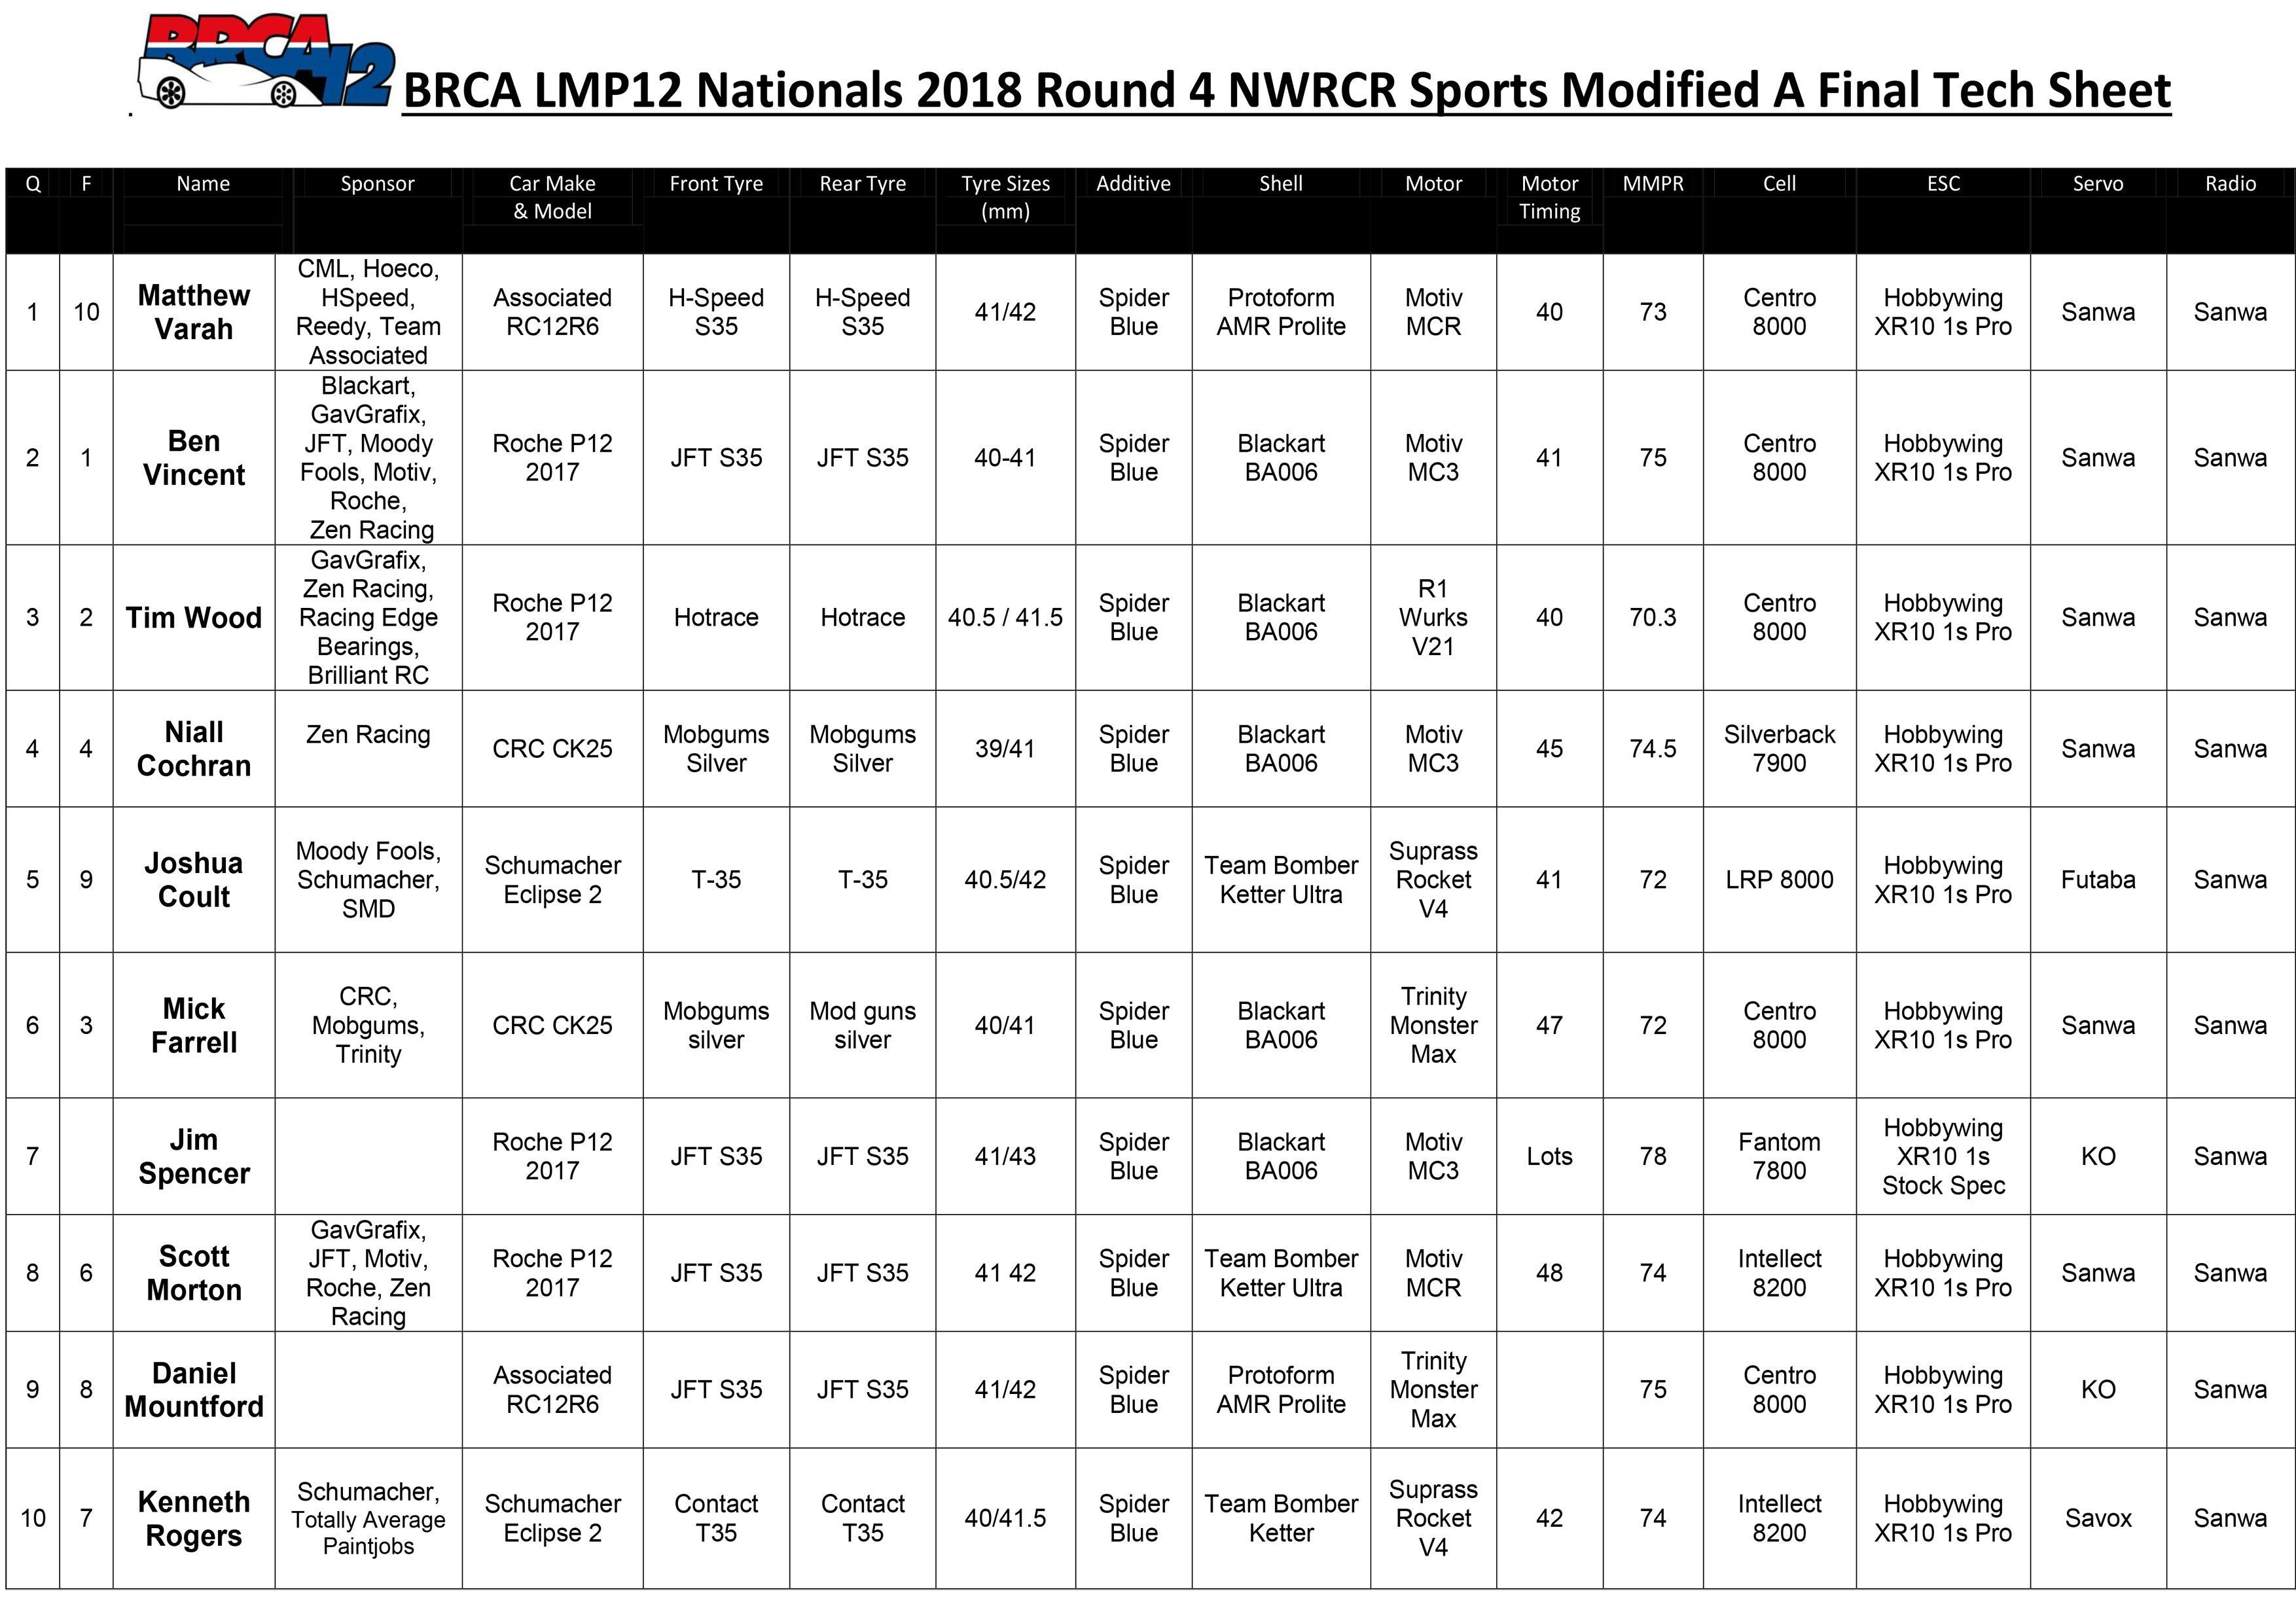 NWRCR Sports Modified Tech Sheet